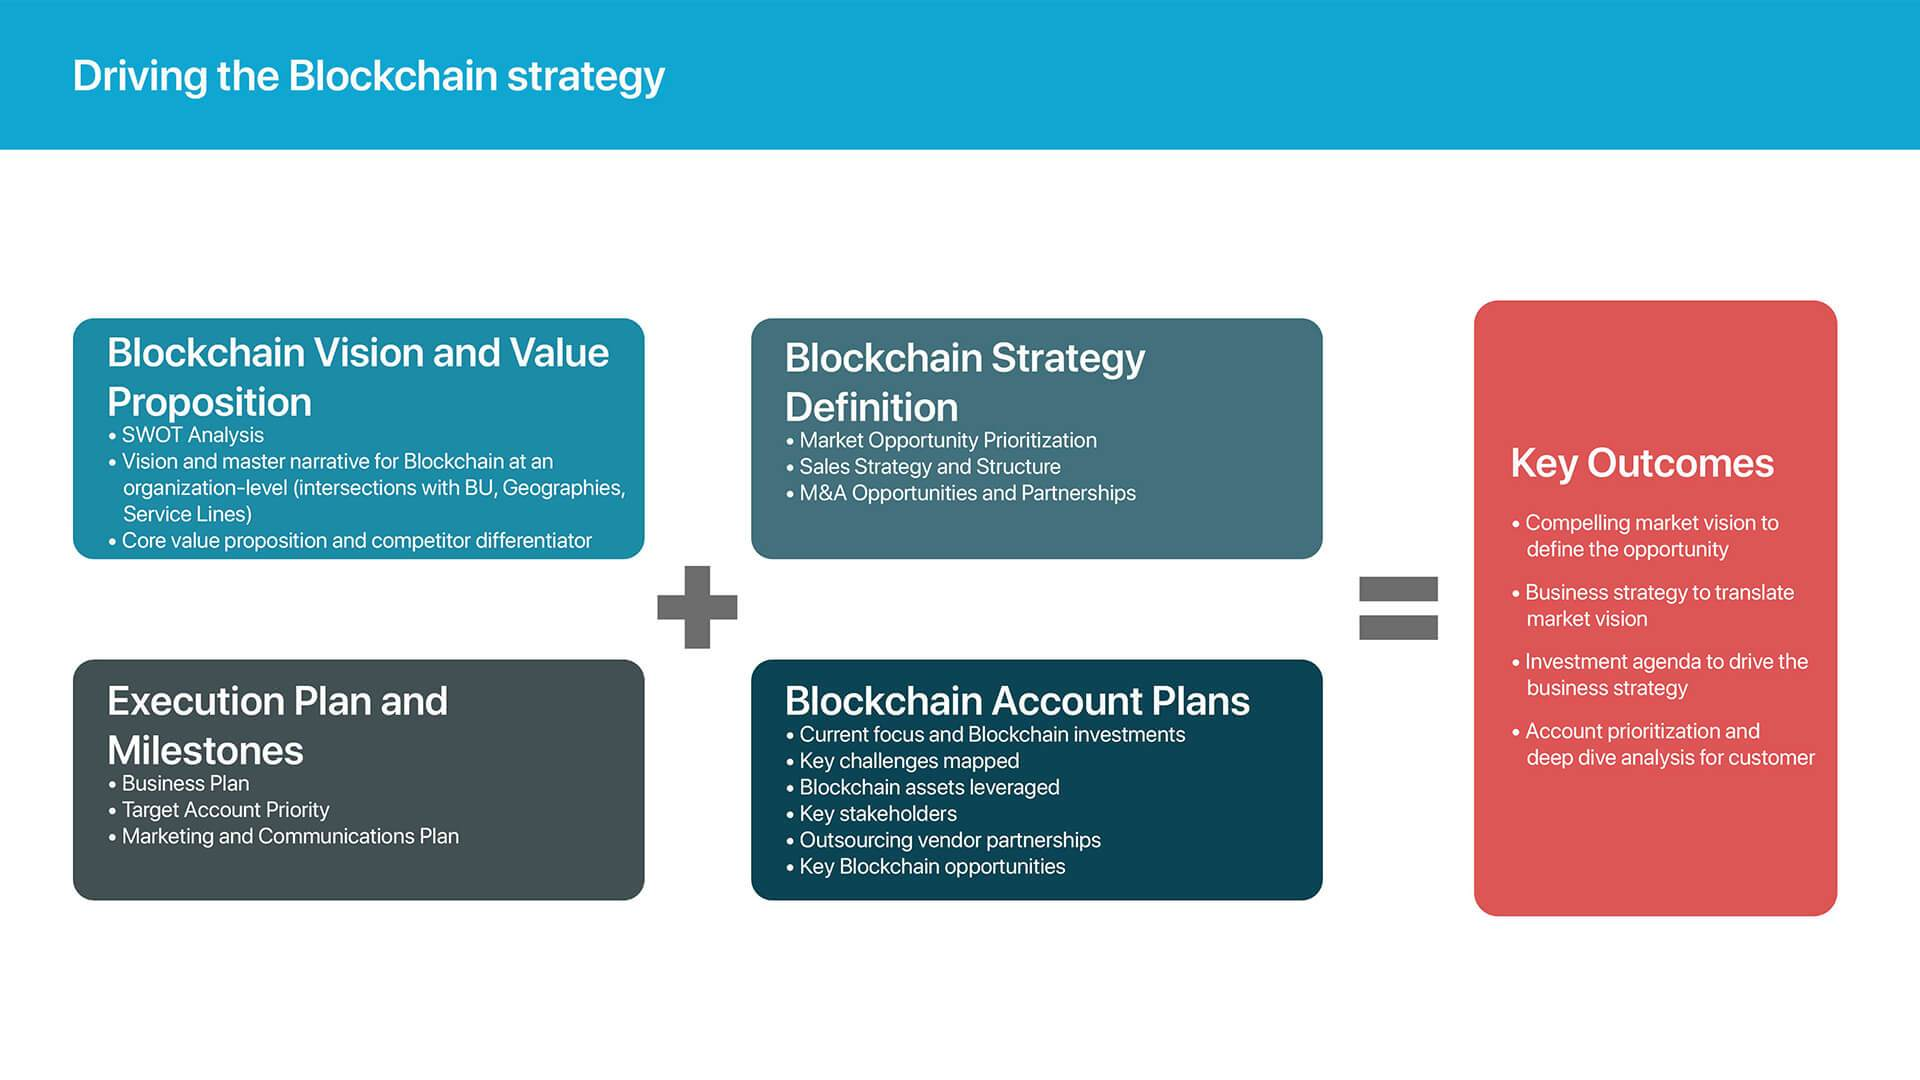 Blockchain Strategy